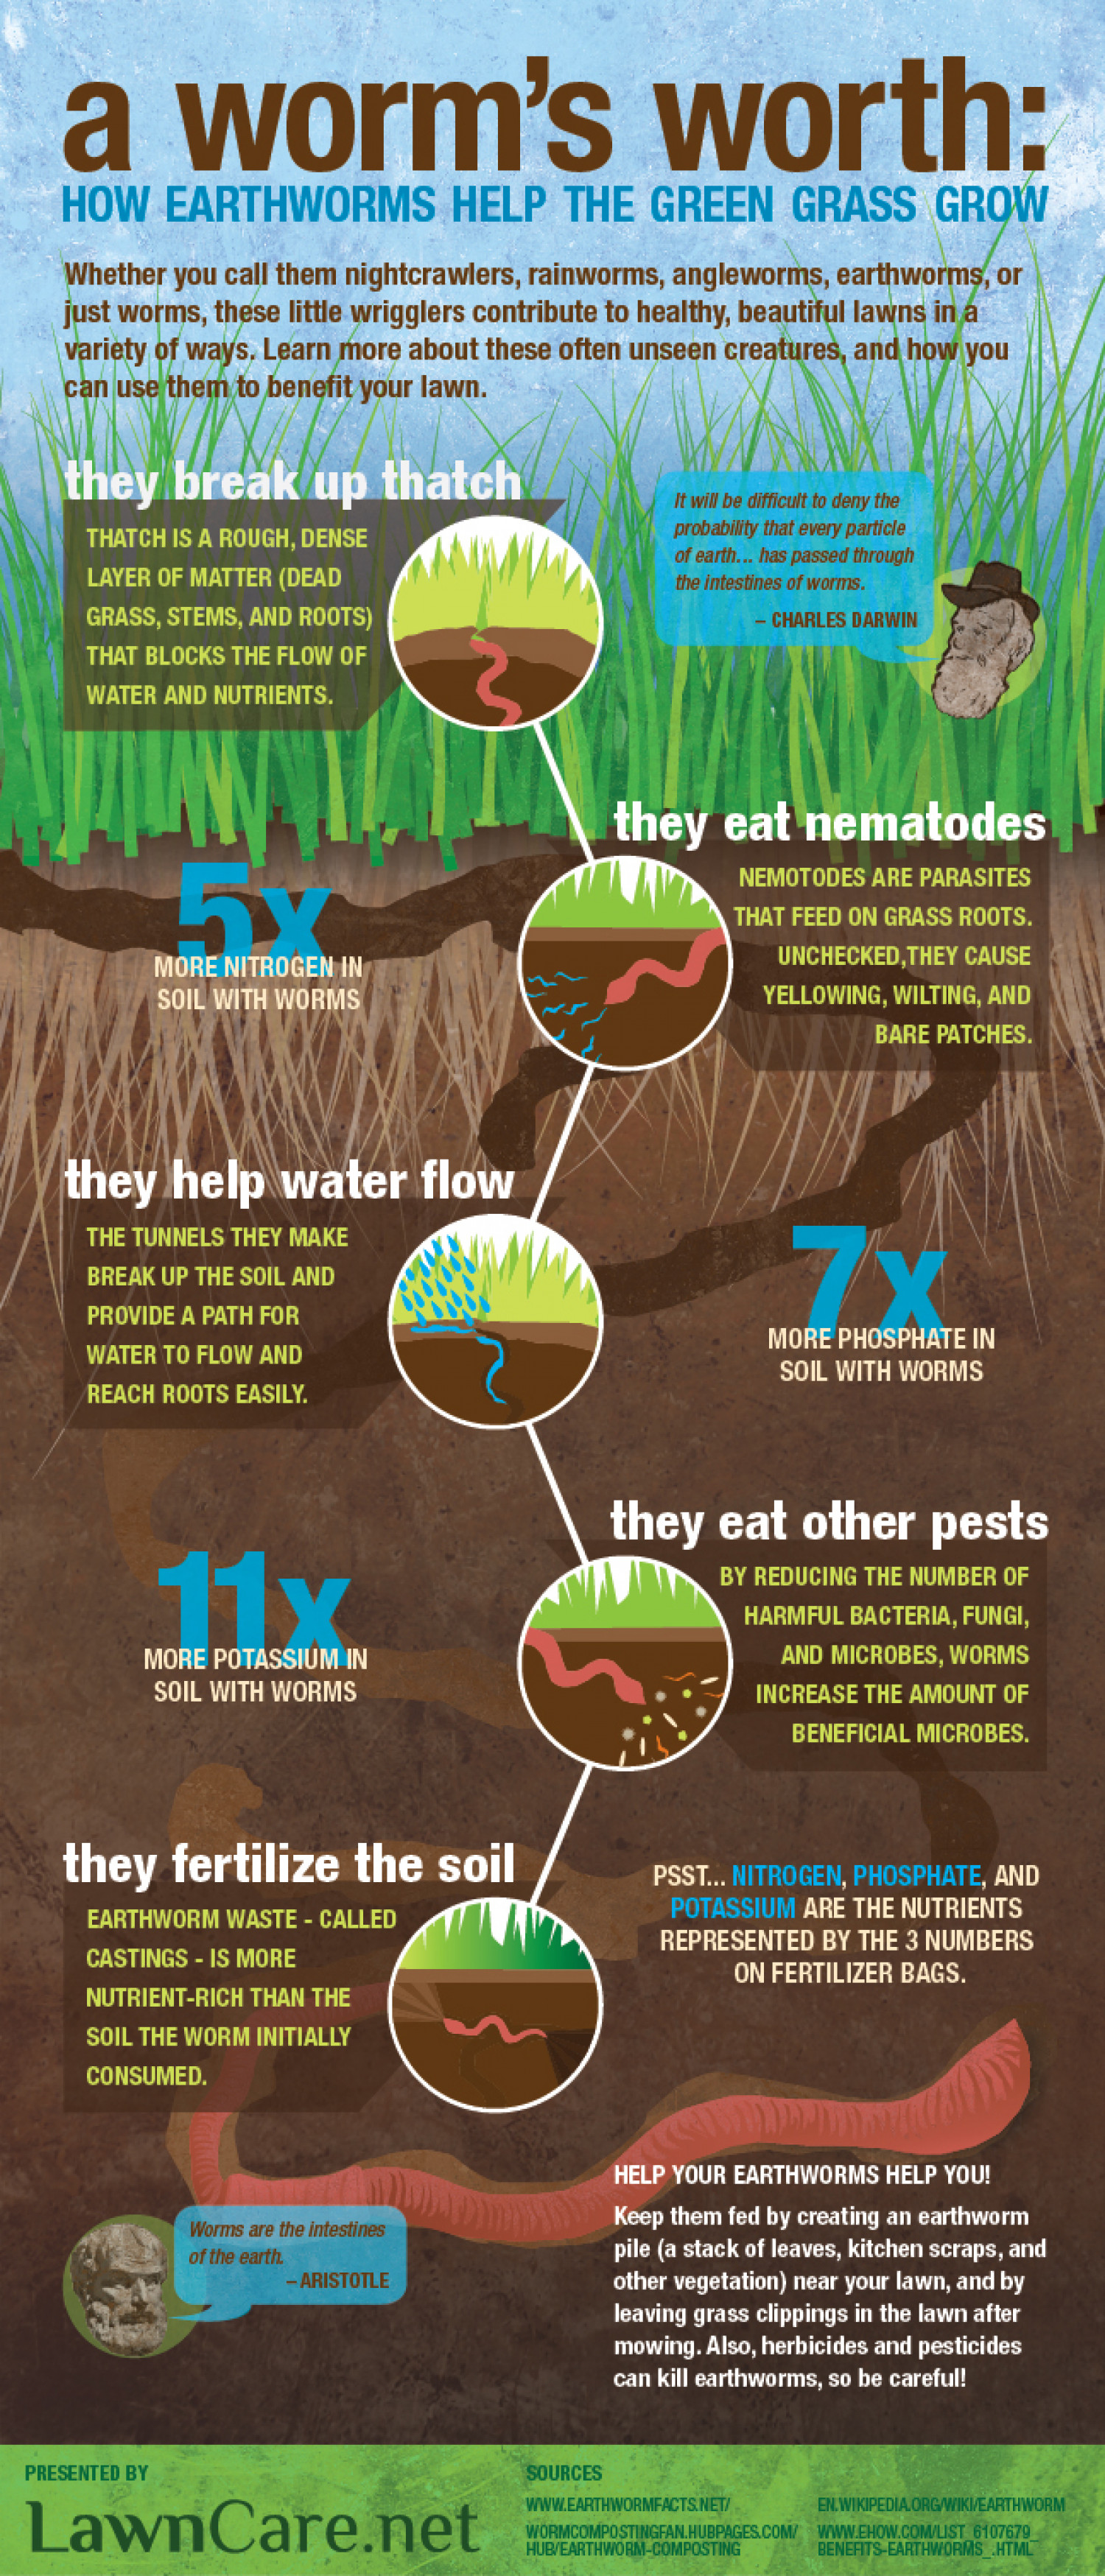 A Worm's Worth: How Earthworms Help the Green Grass Grow Infographic